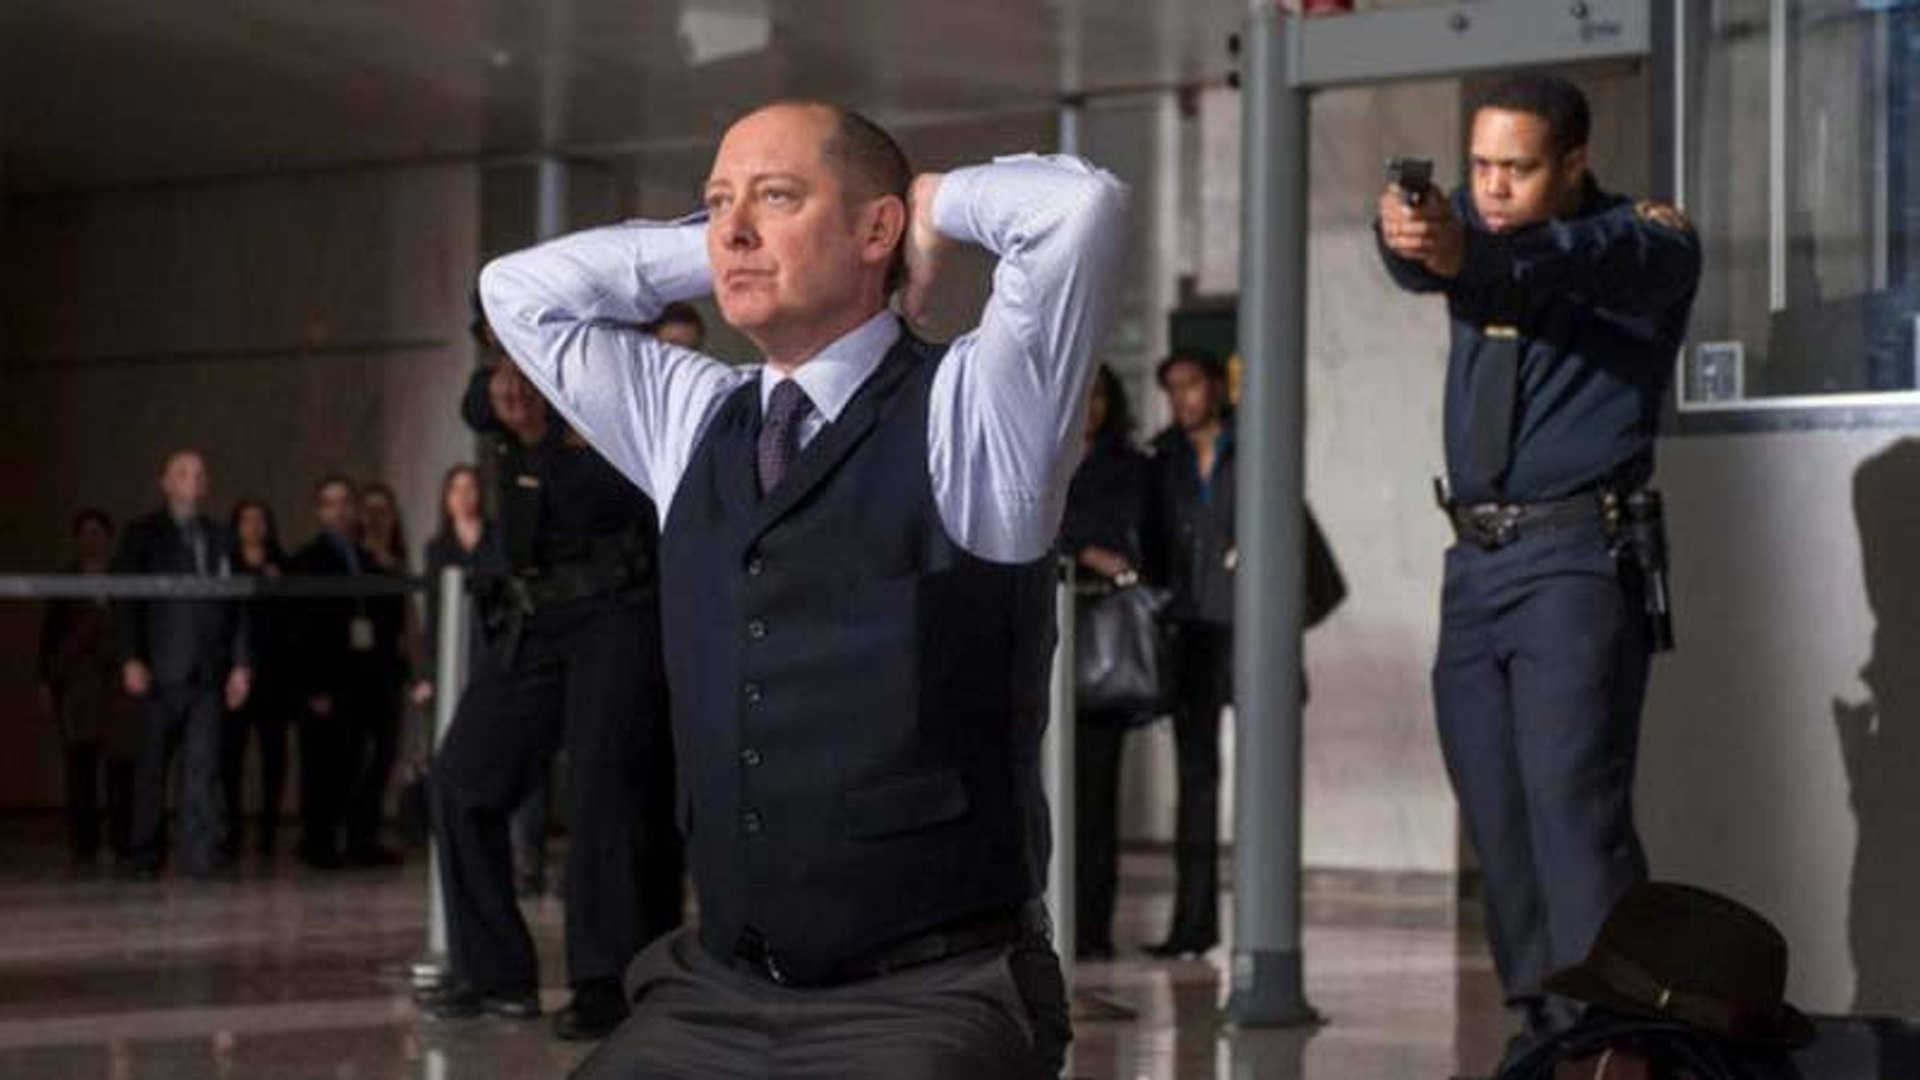 Watch The Blacklist Season 5 Episode 2 (Raymond Reddington is back) full streaming